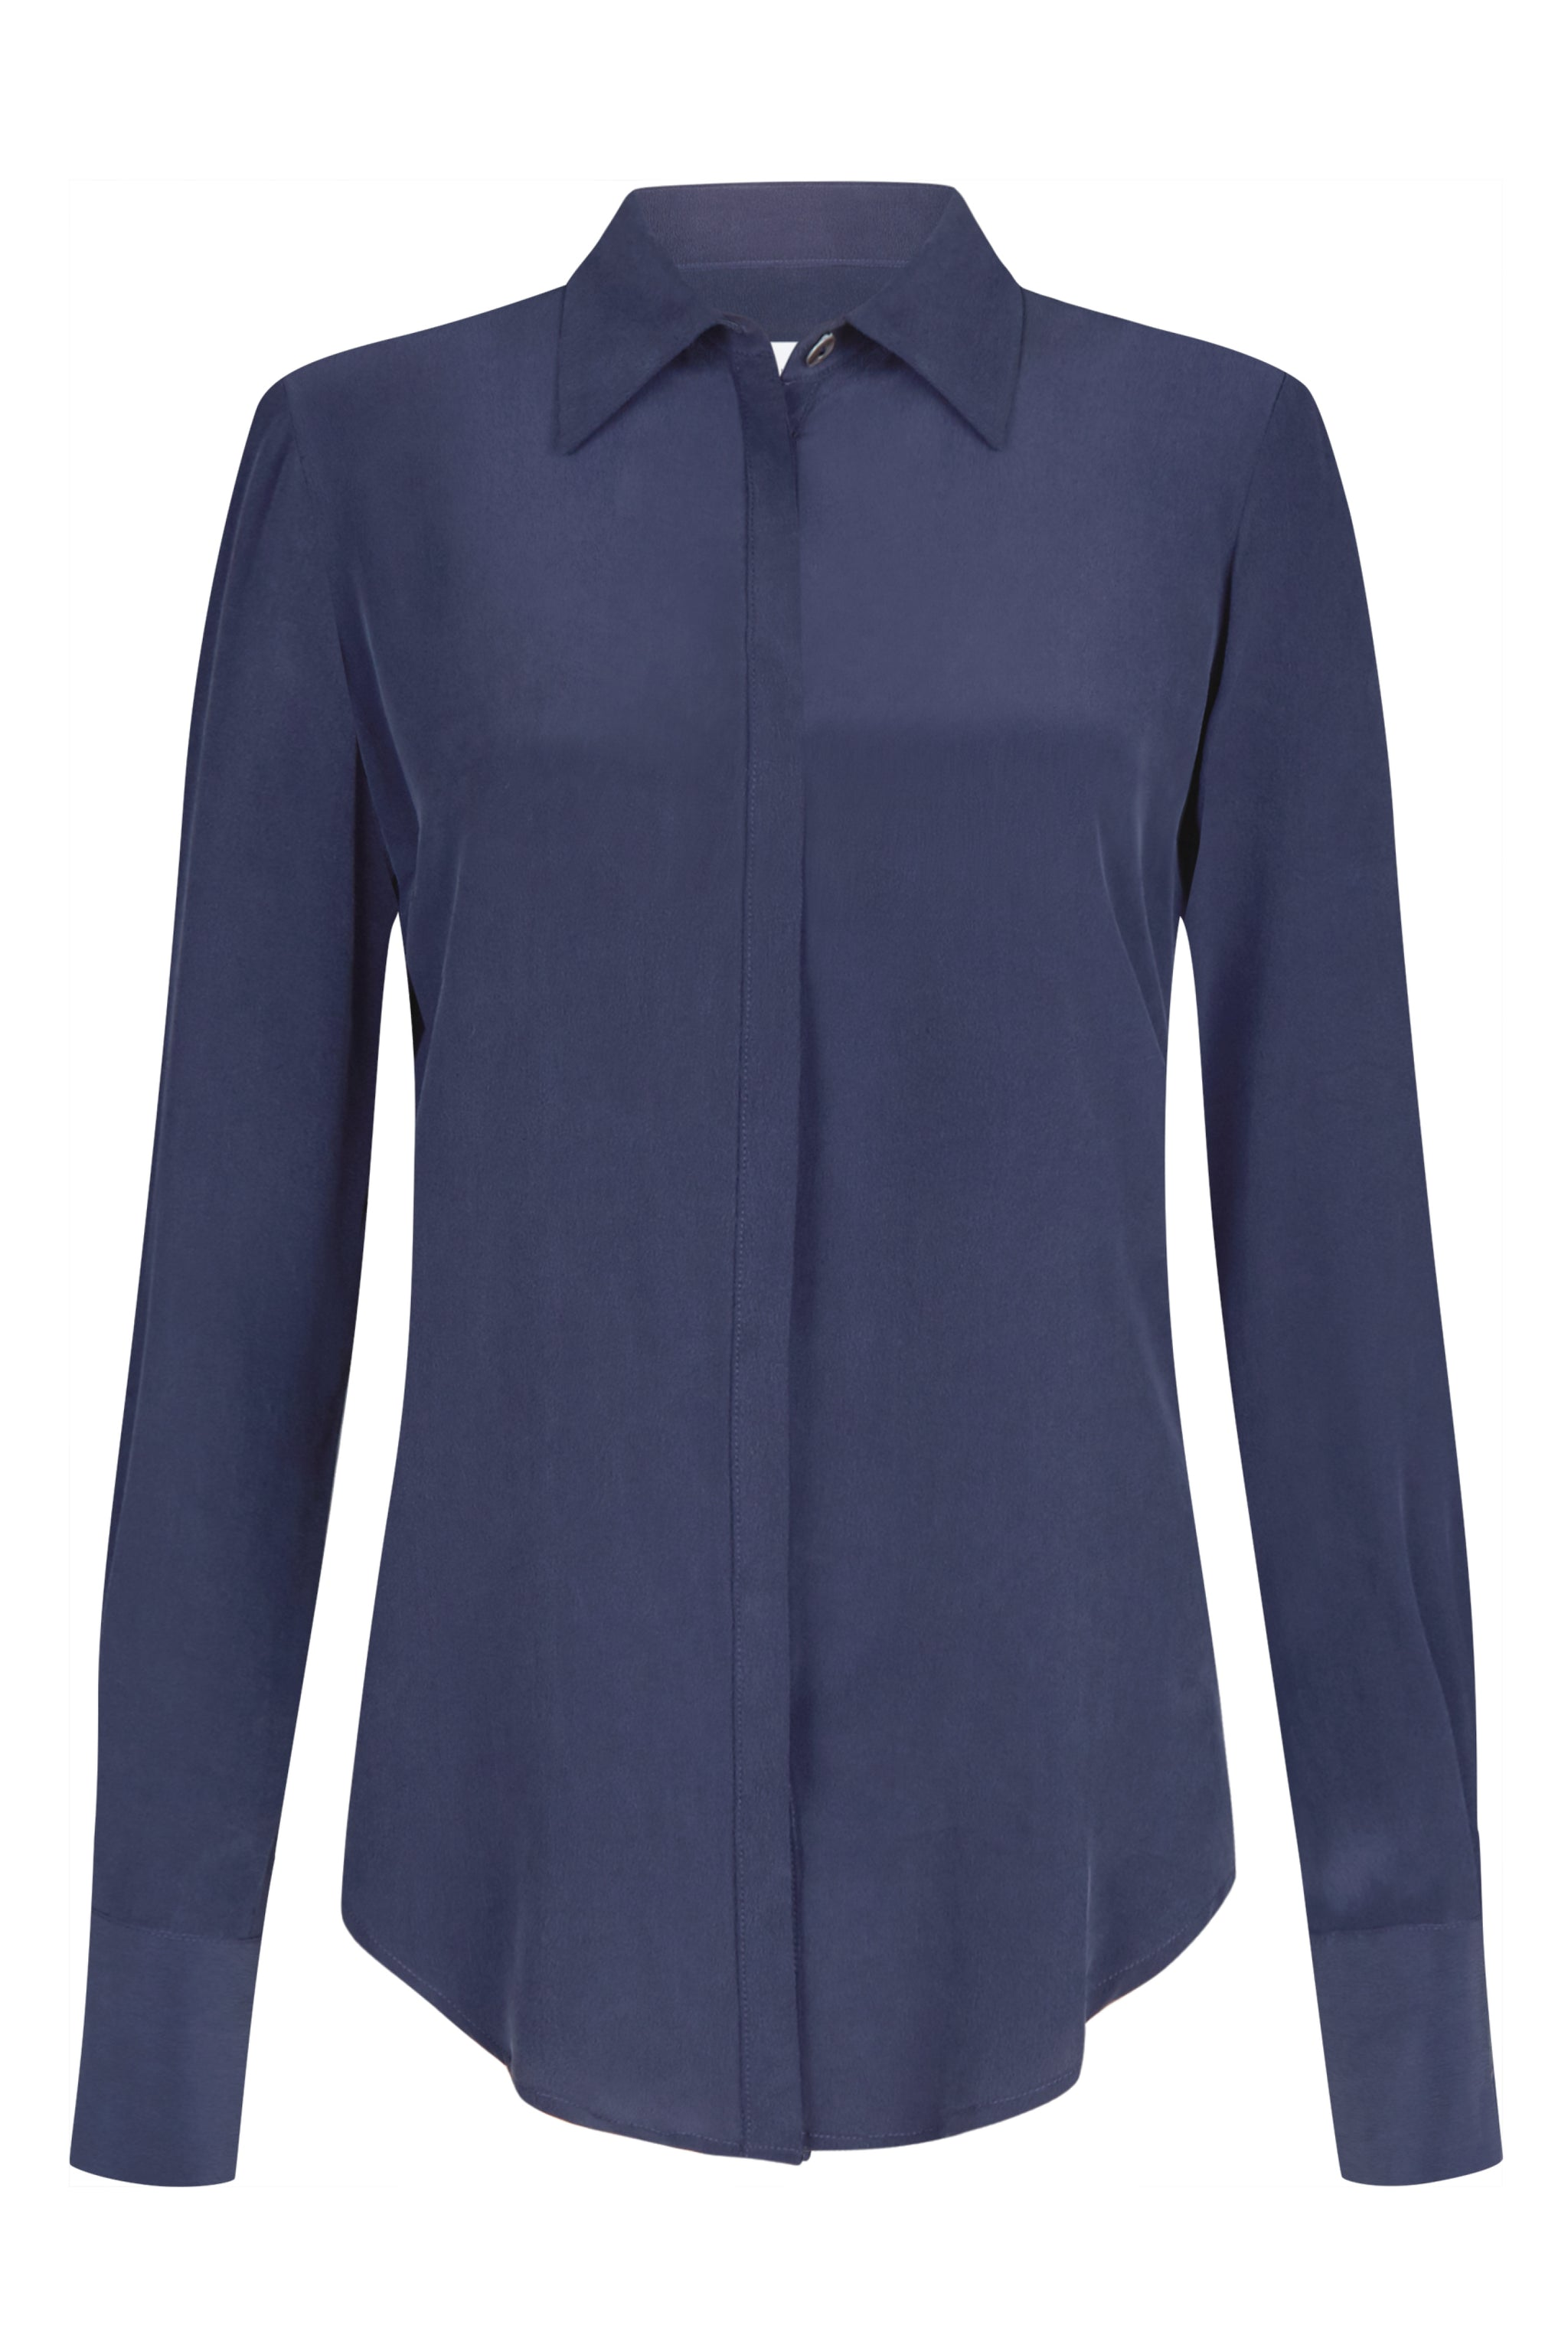 Beaulieu Navy Sandwash Silk Shirt